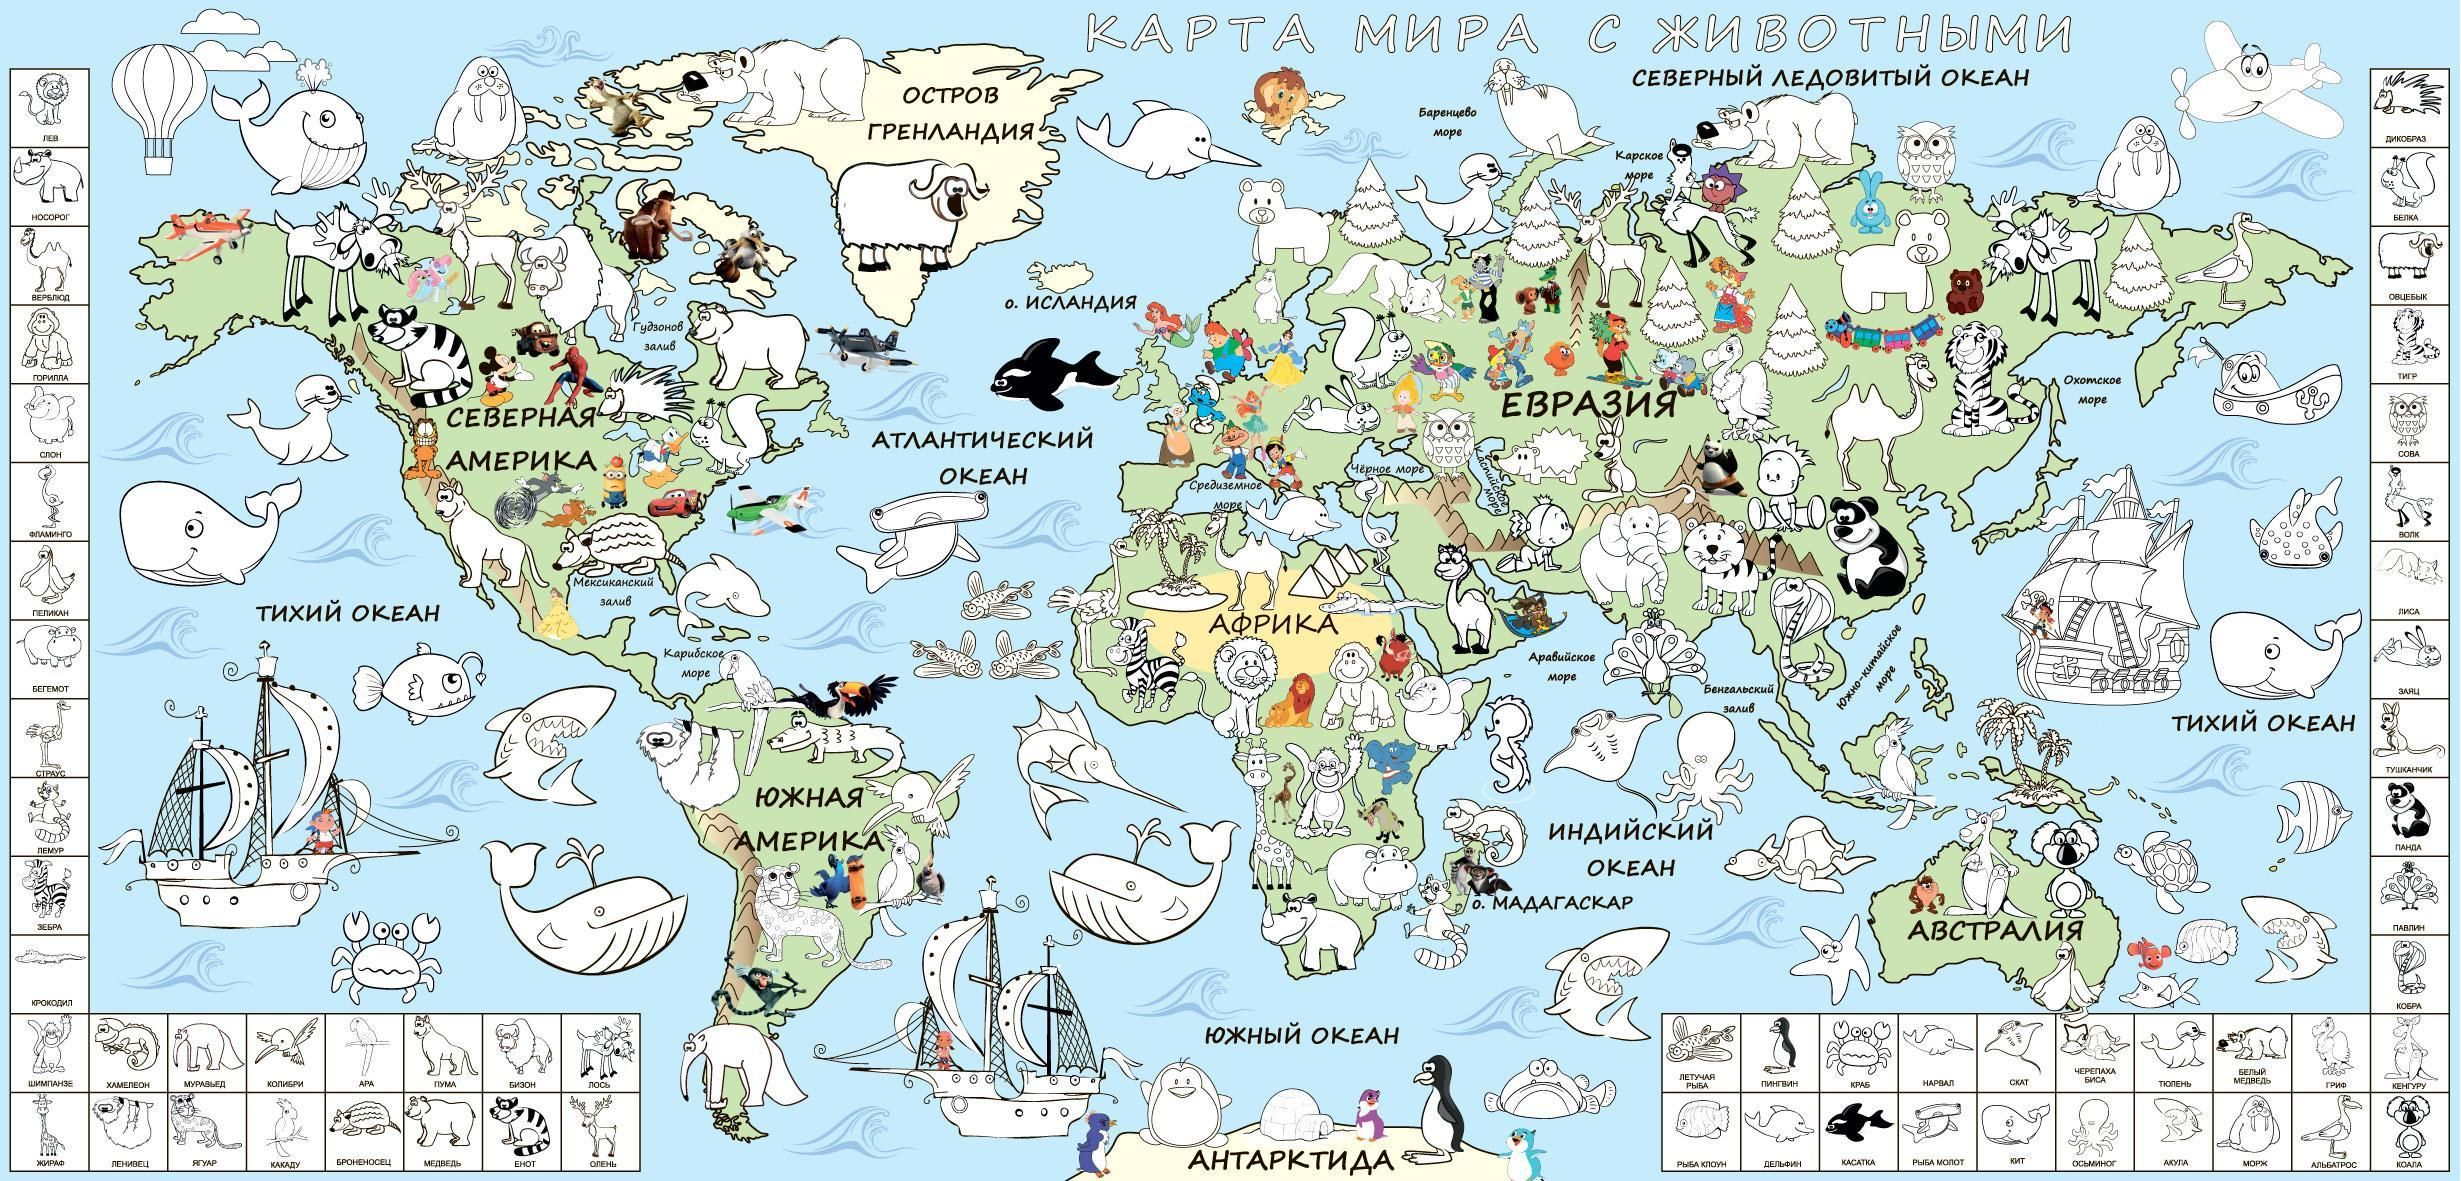 coloring wallpaper world map coloring wallpaper world map with animals gumiabroncs Choice Image